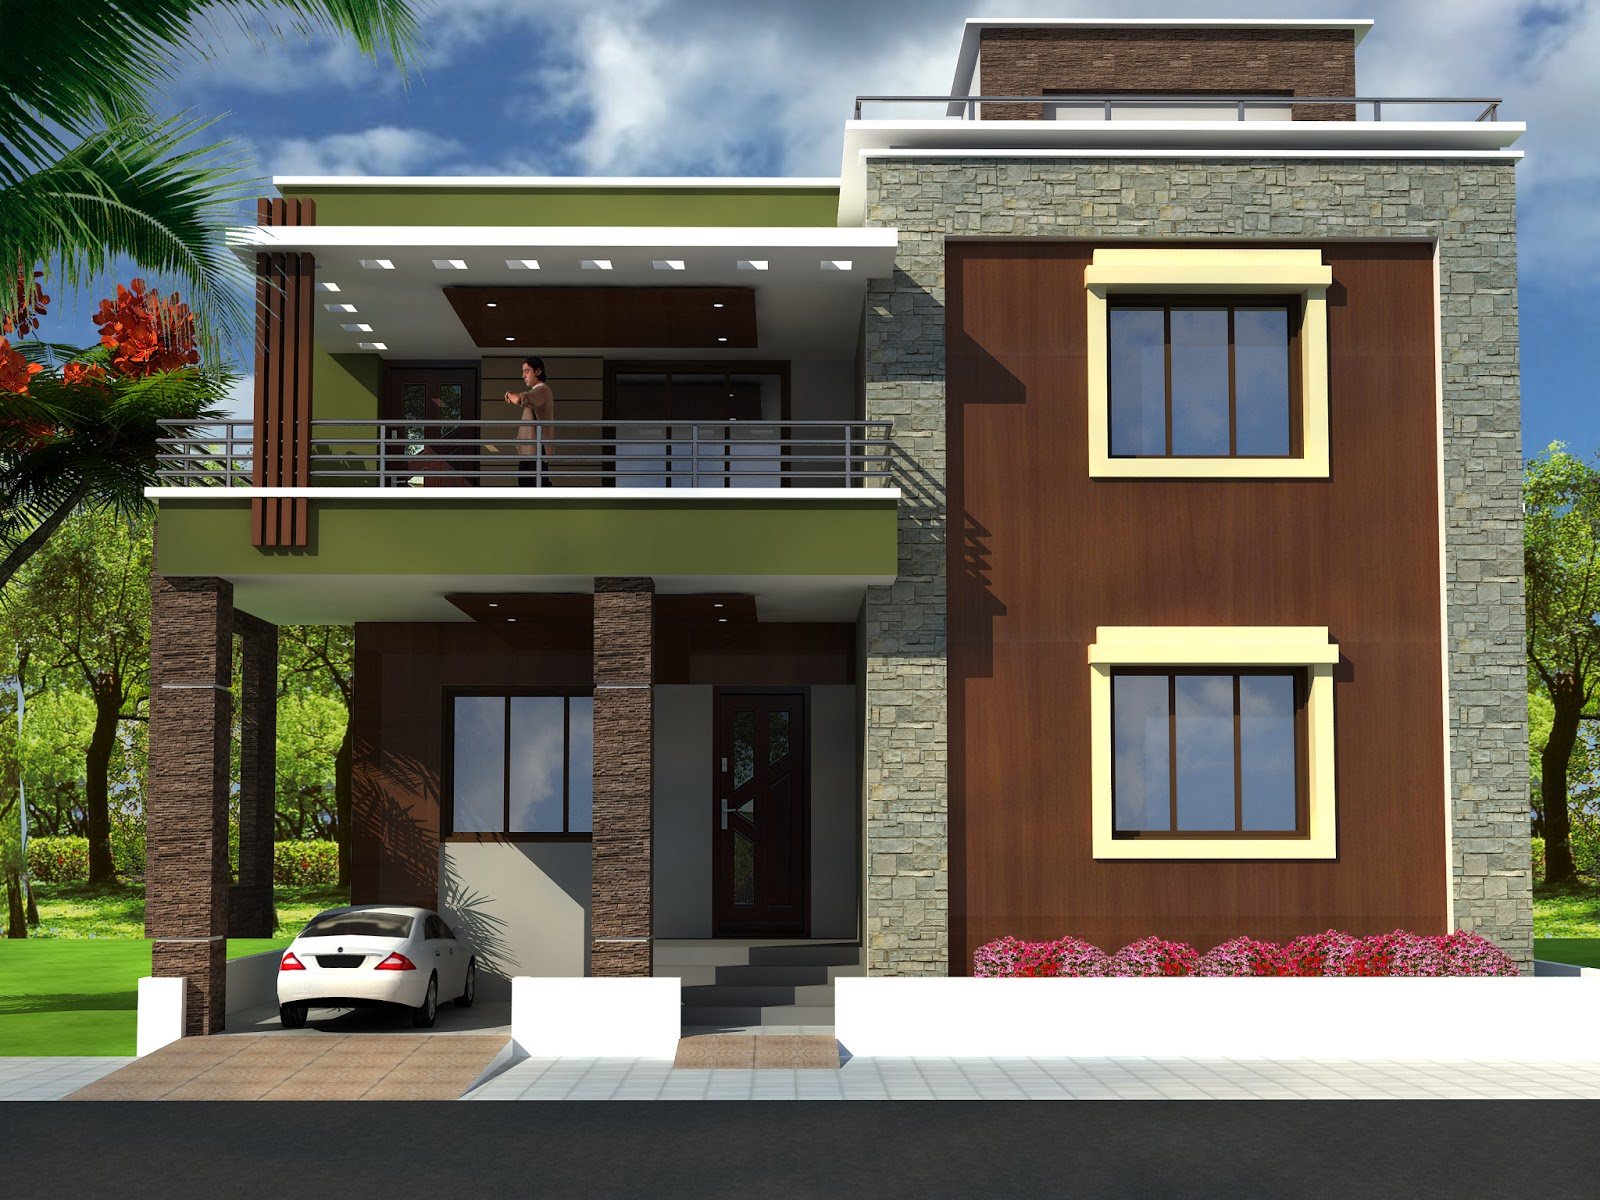 north indian home plans and designs free image gallery home plan design - House Plans And Designs